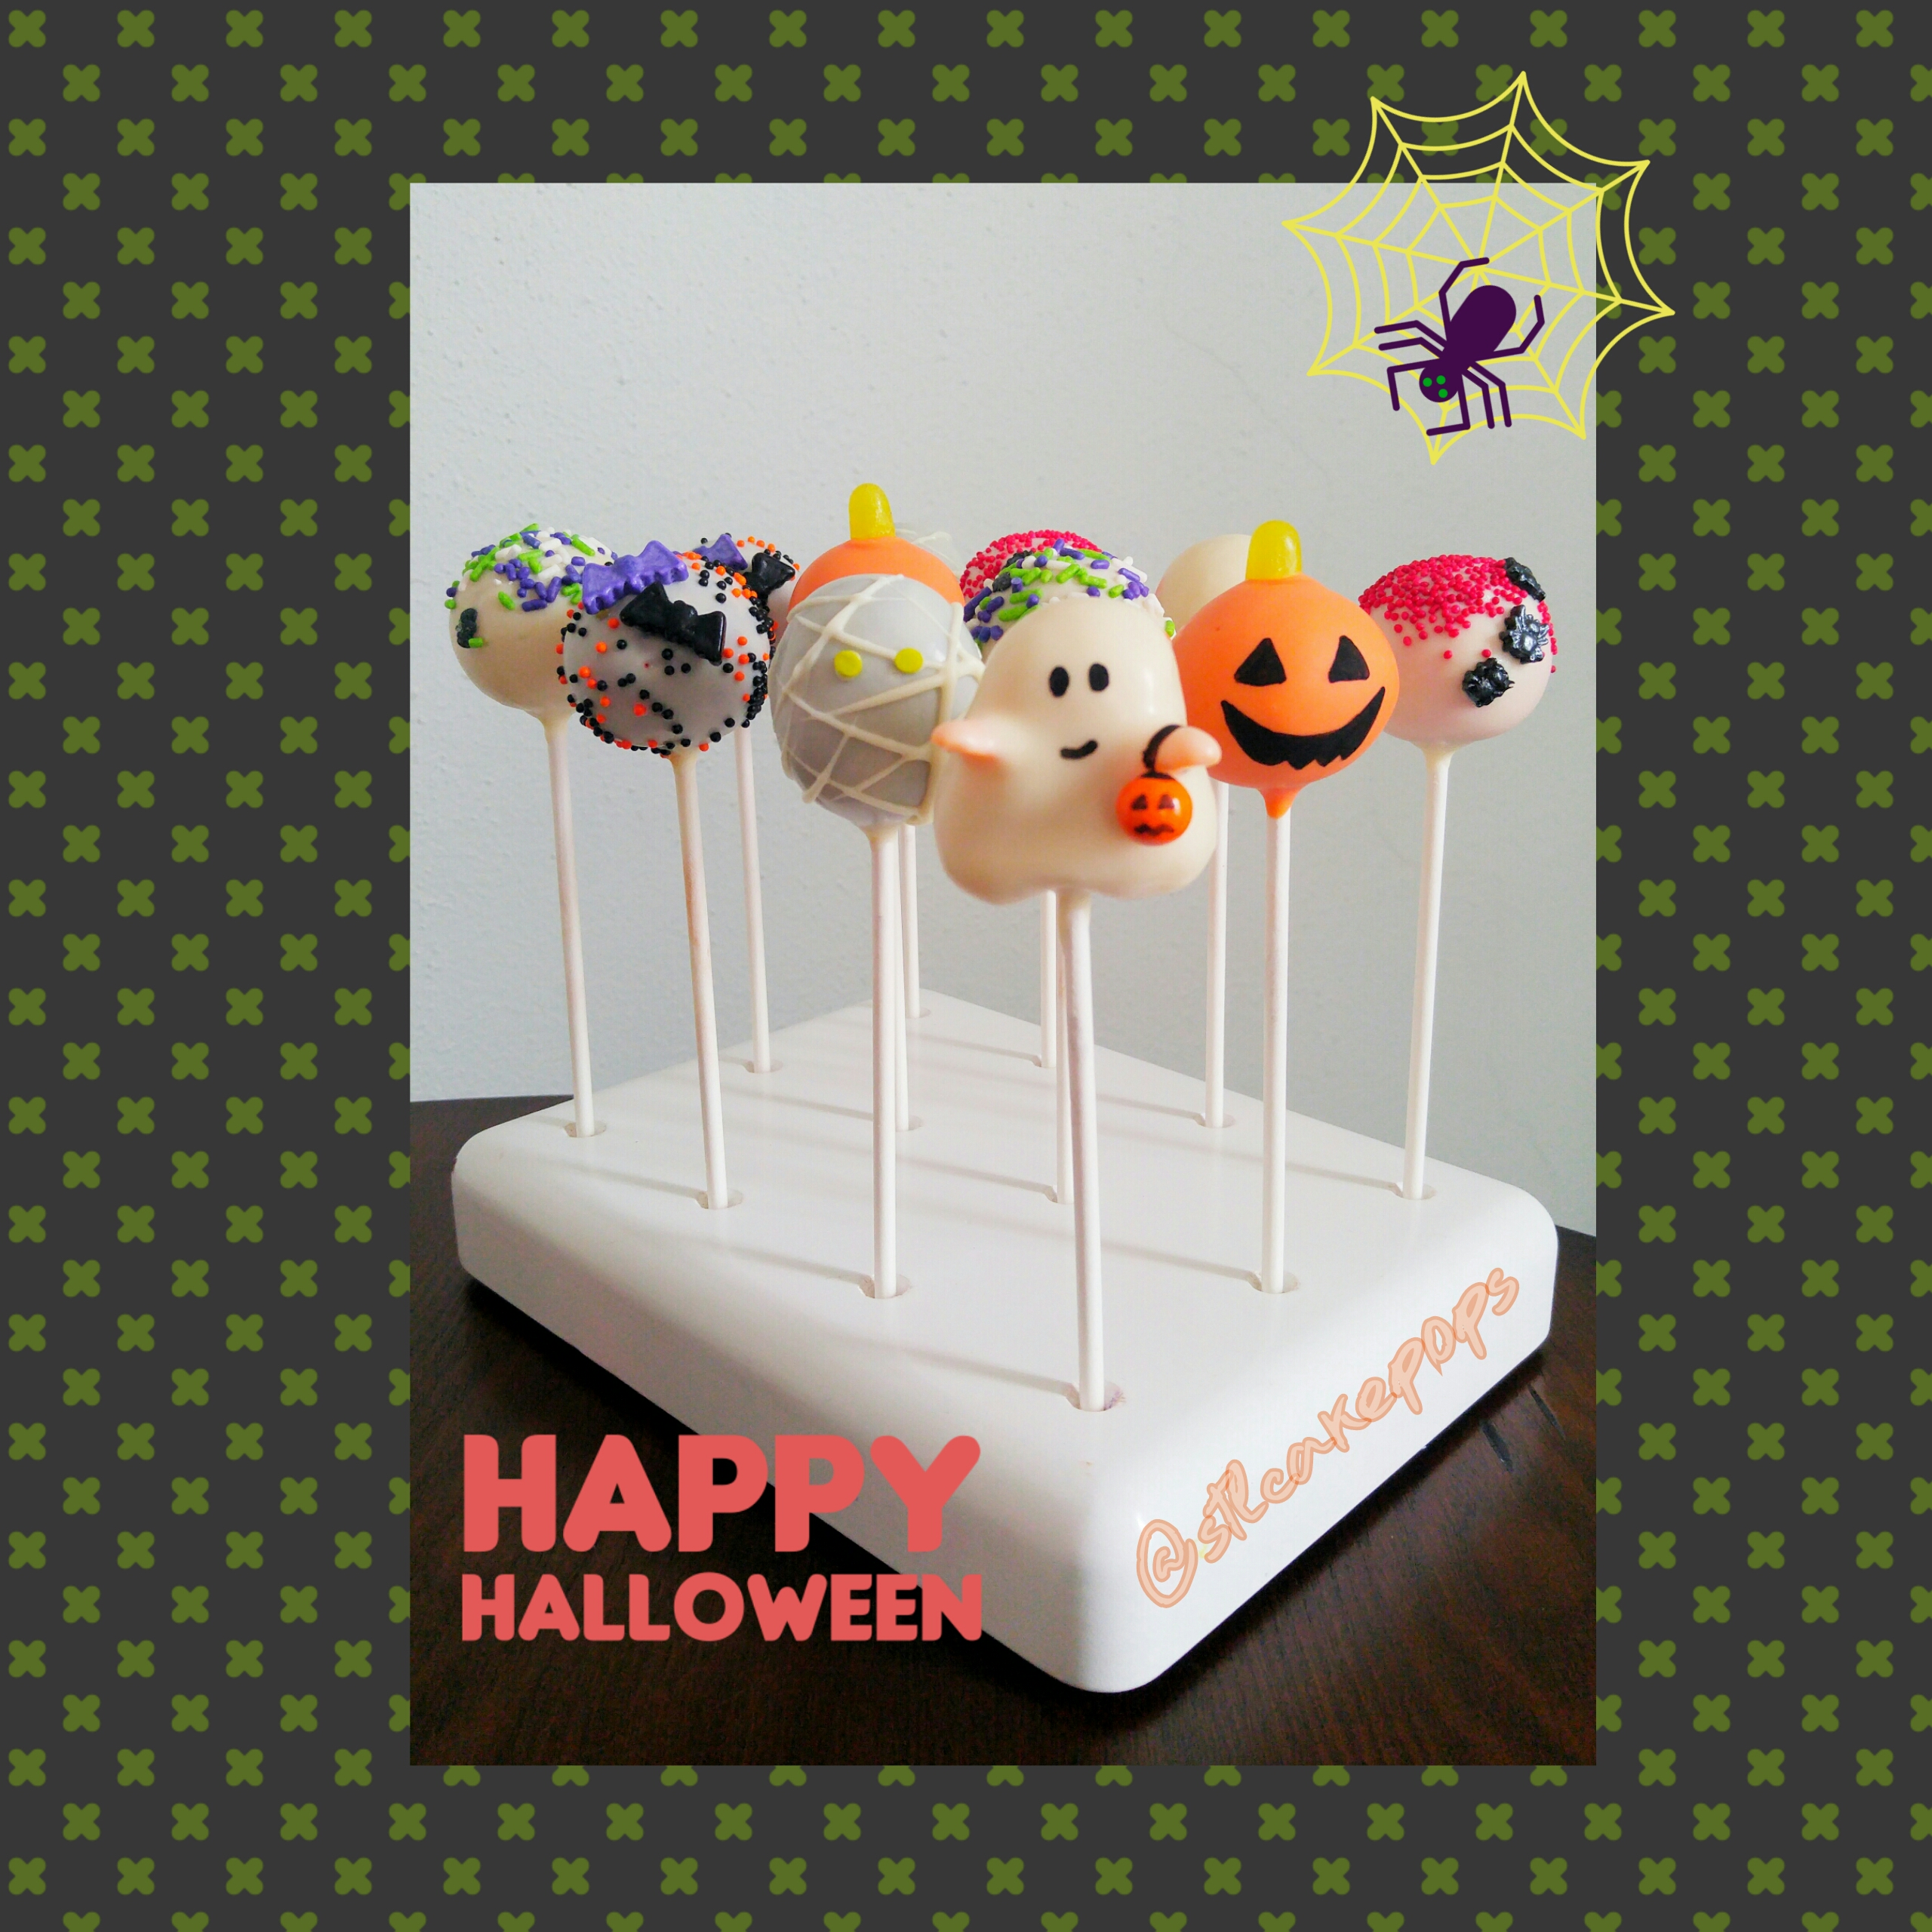 Assorted Halloween Cake Pops